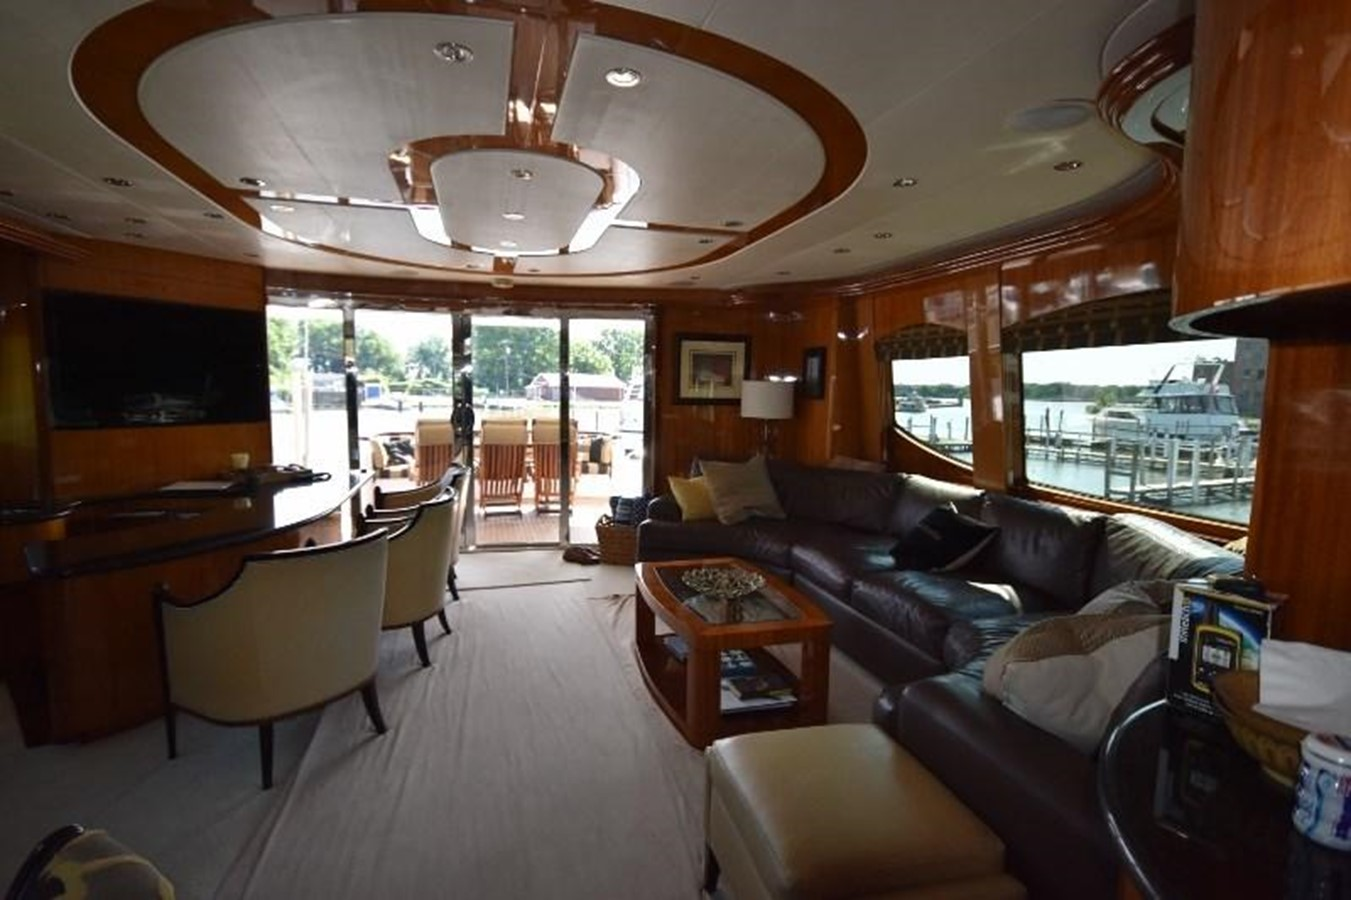 28 - 80 HATTERAS For Sale